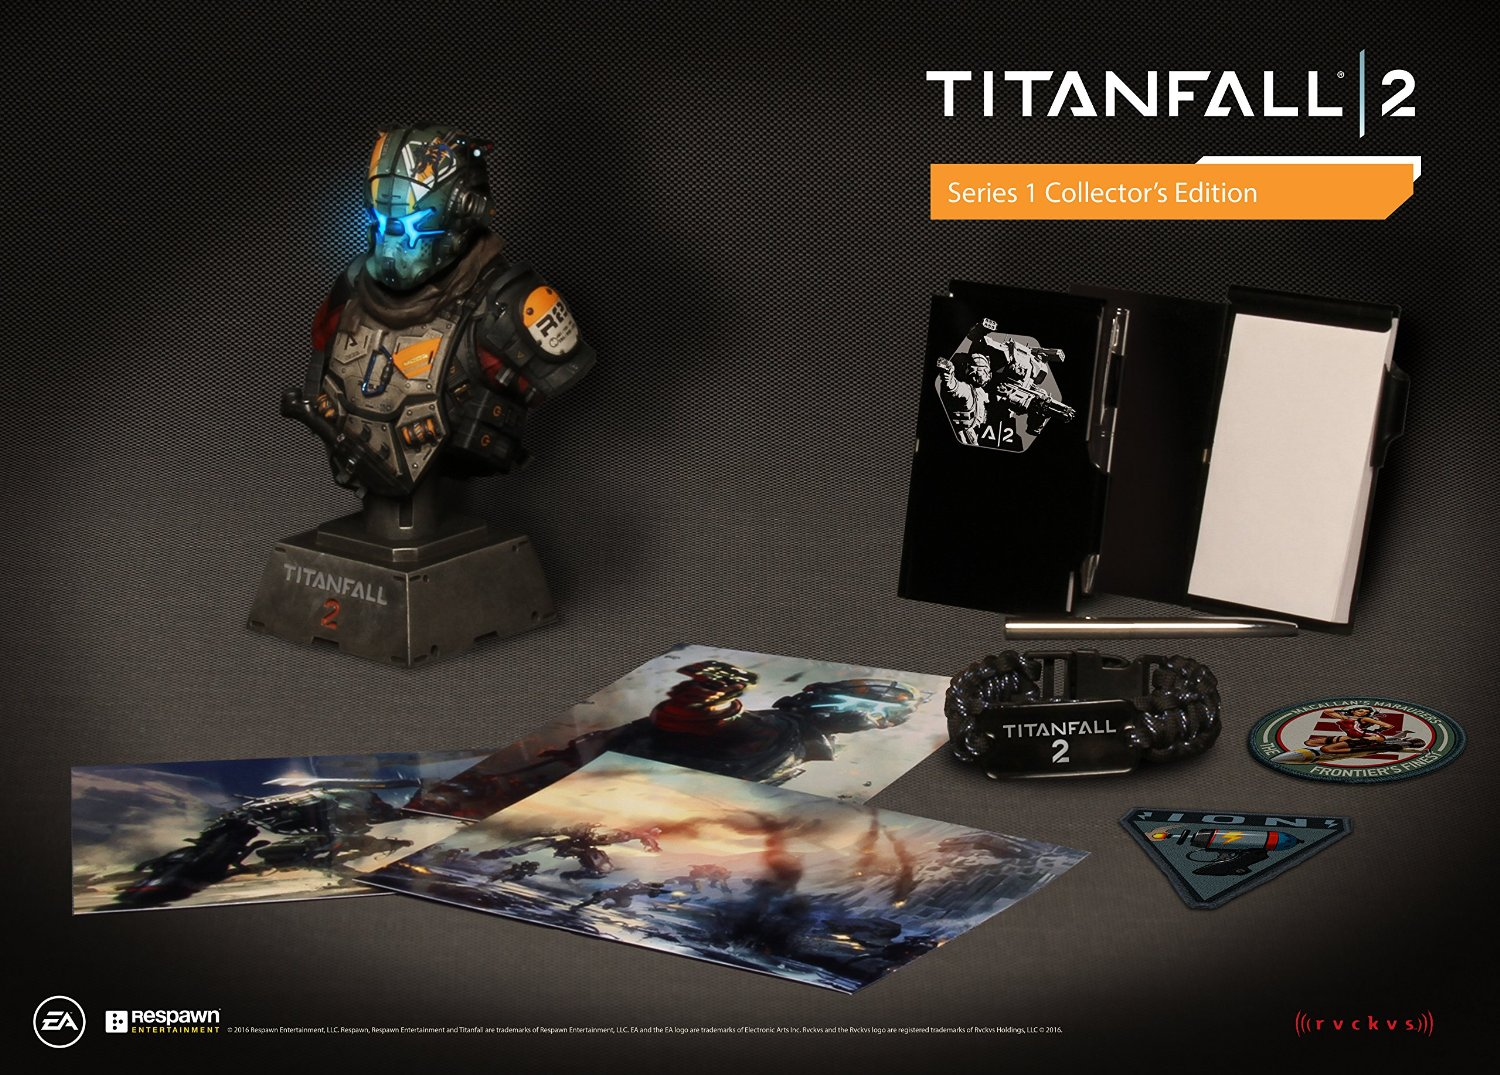 Titanfall-2-Collectors-Edition-1-NAT-Games.de